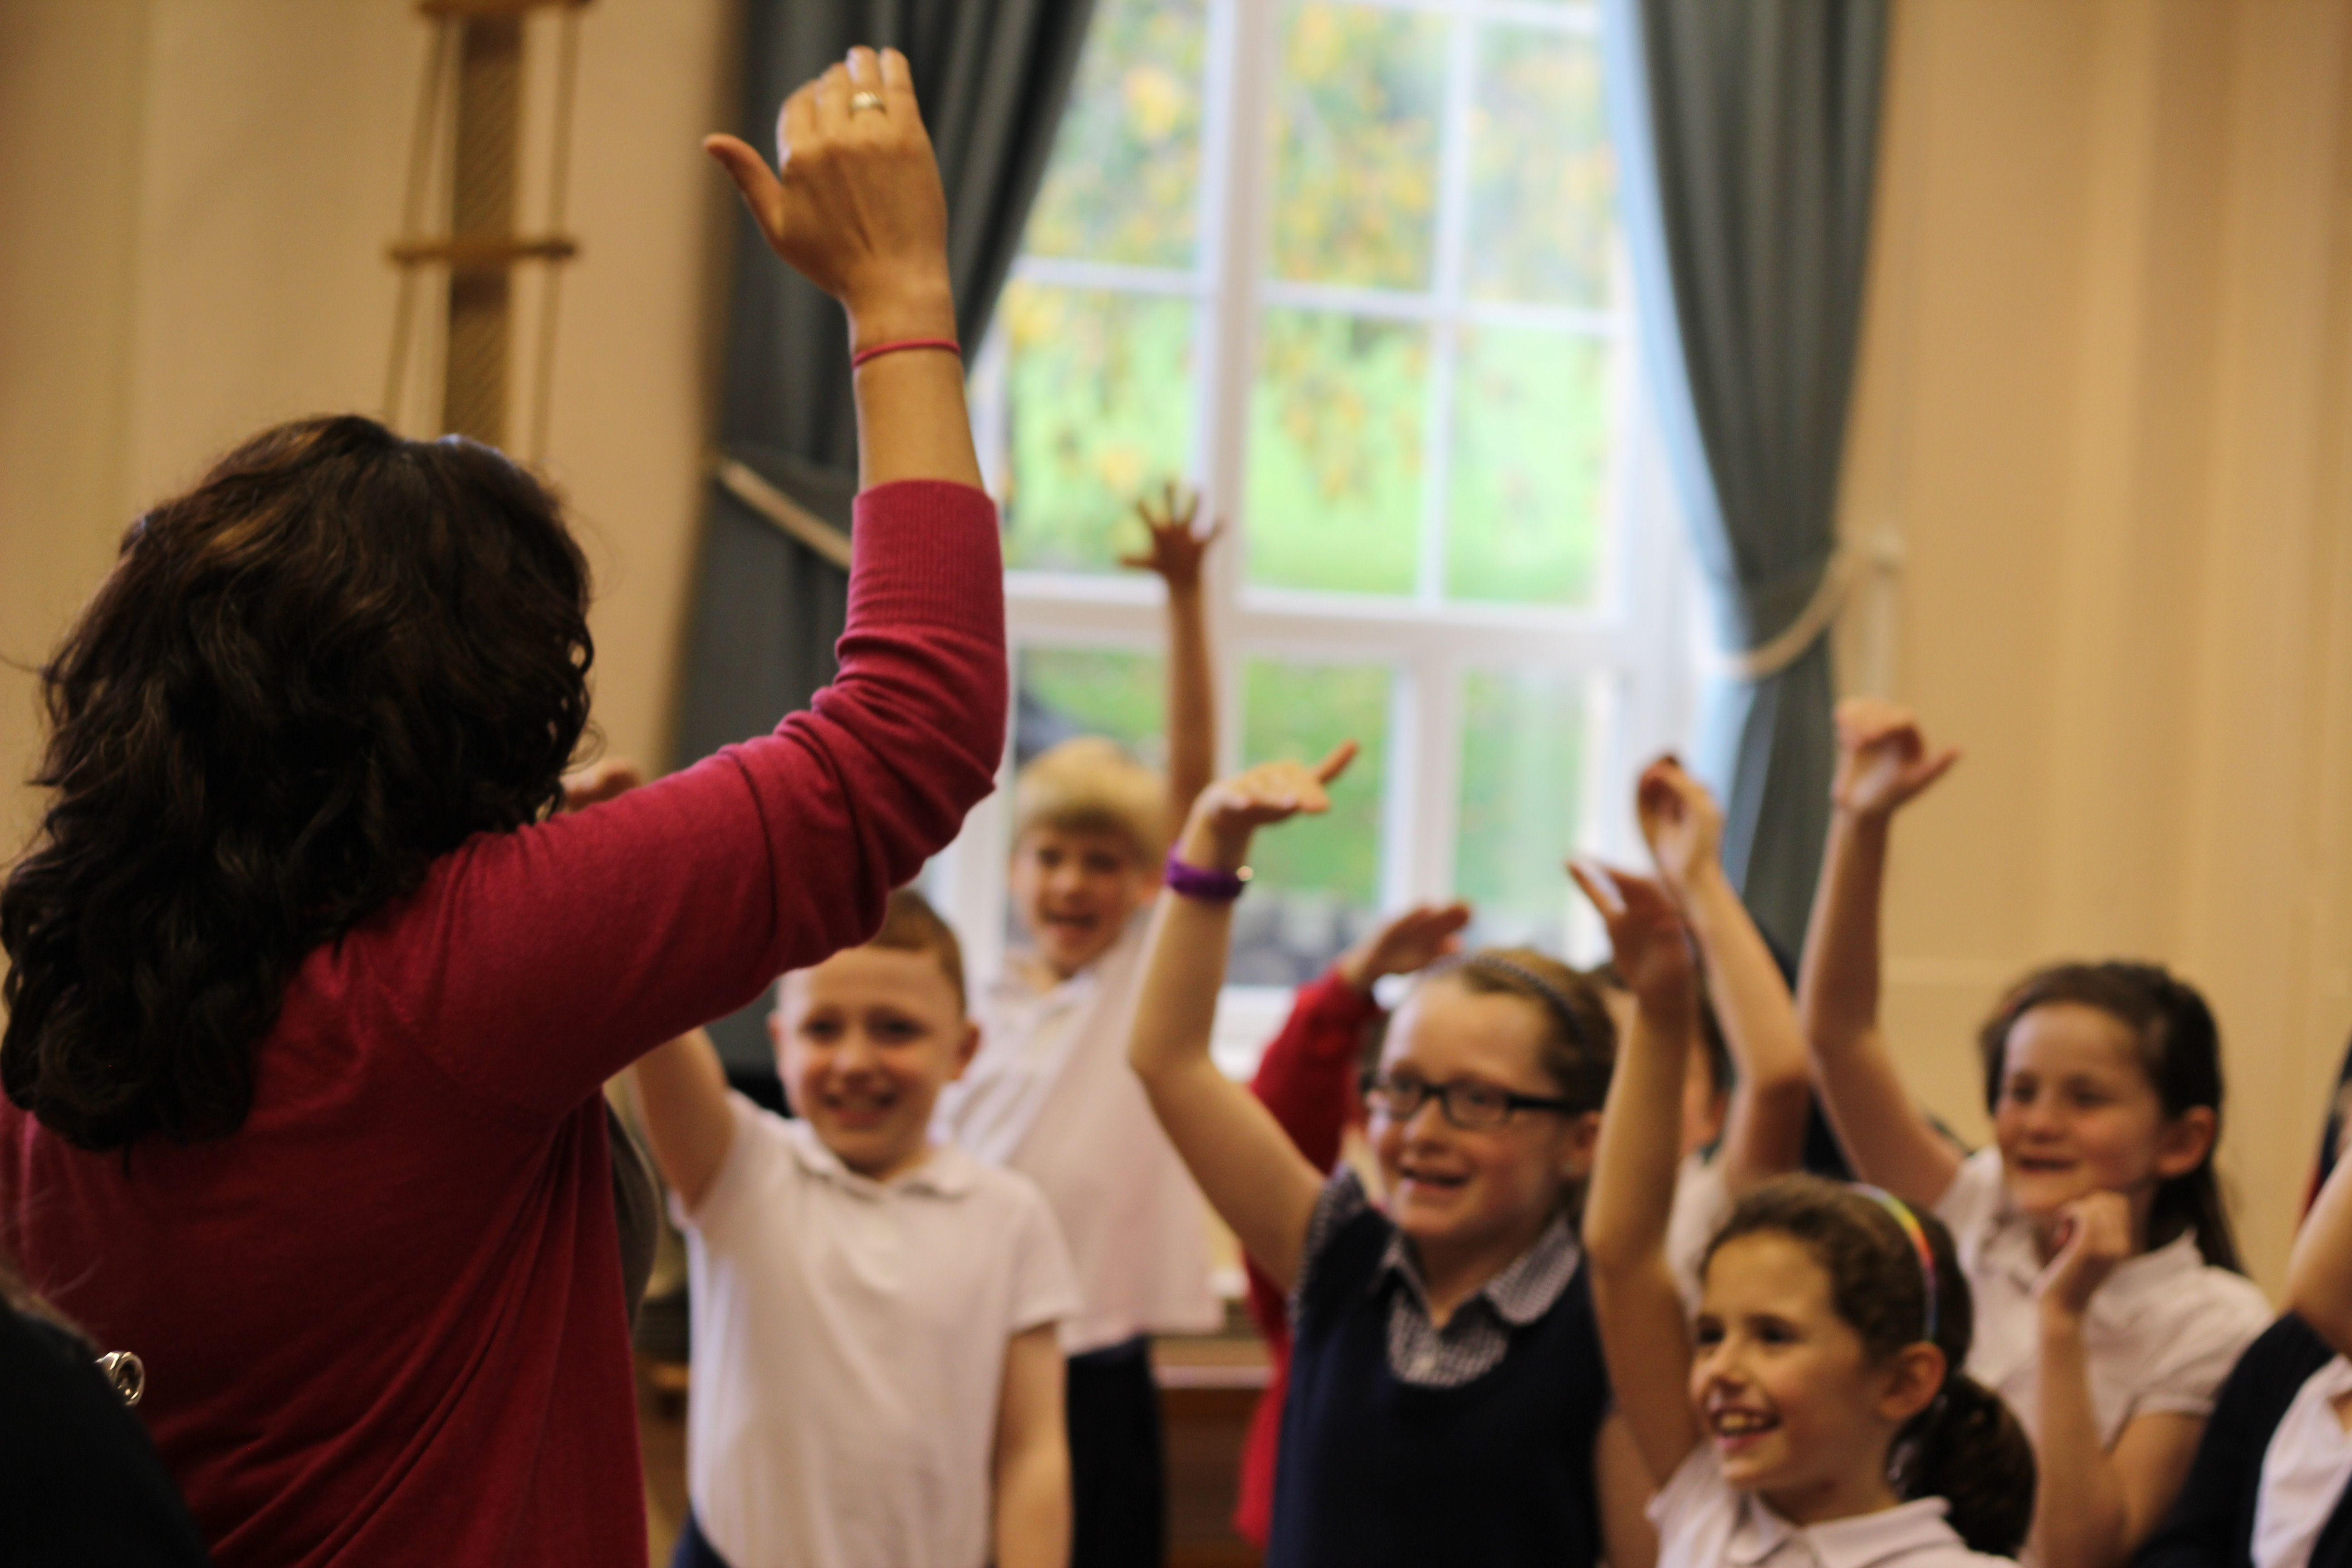 'I Have A Dream' workshop